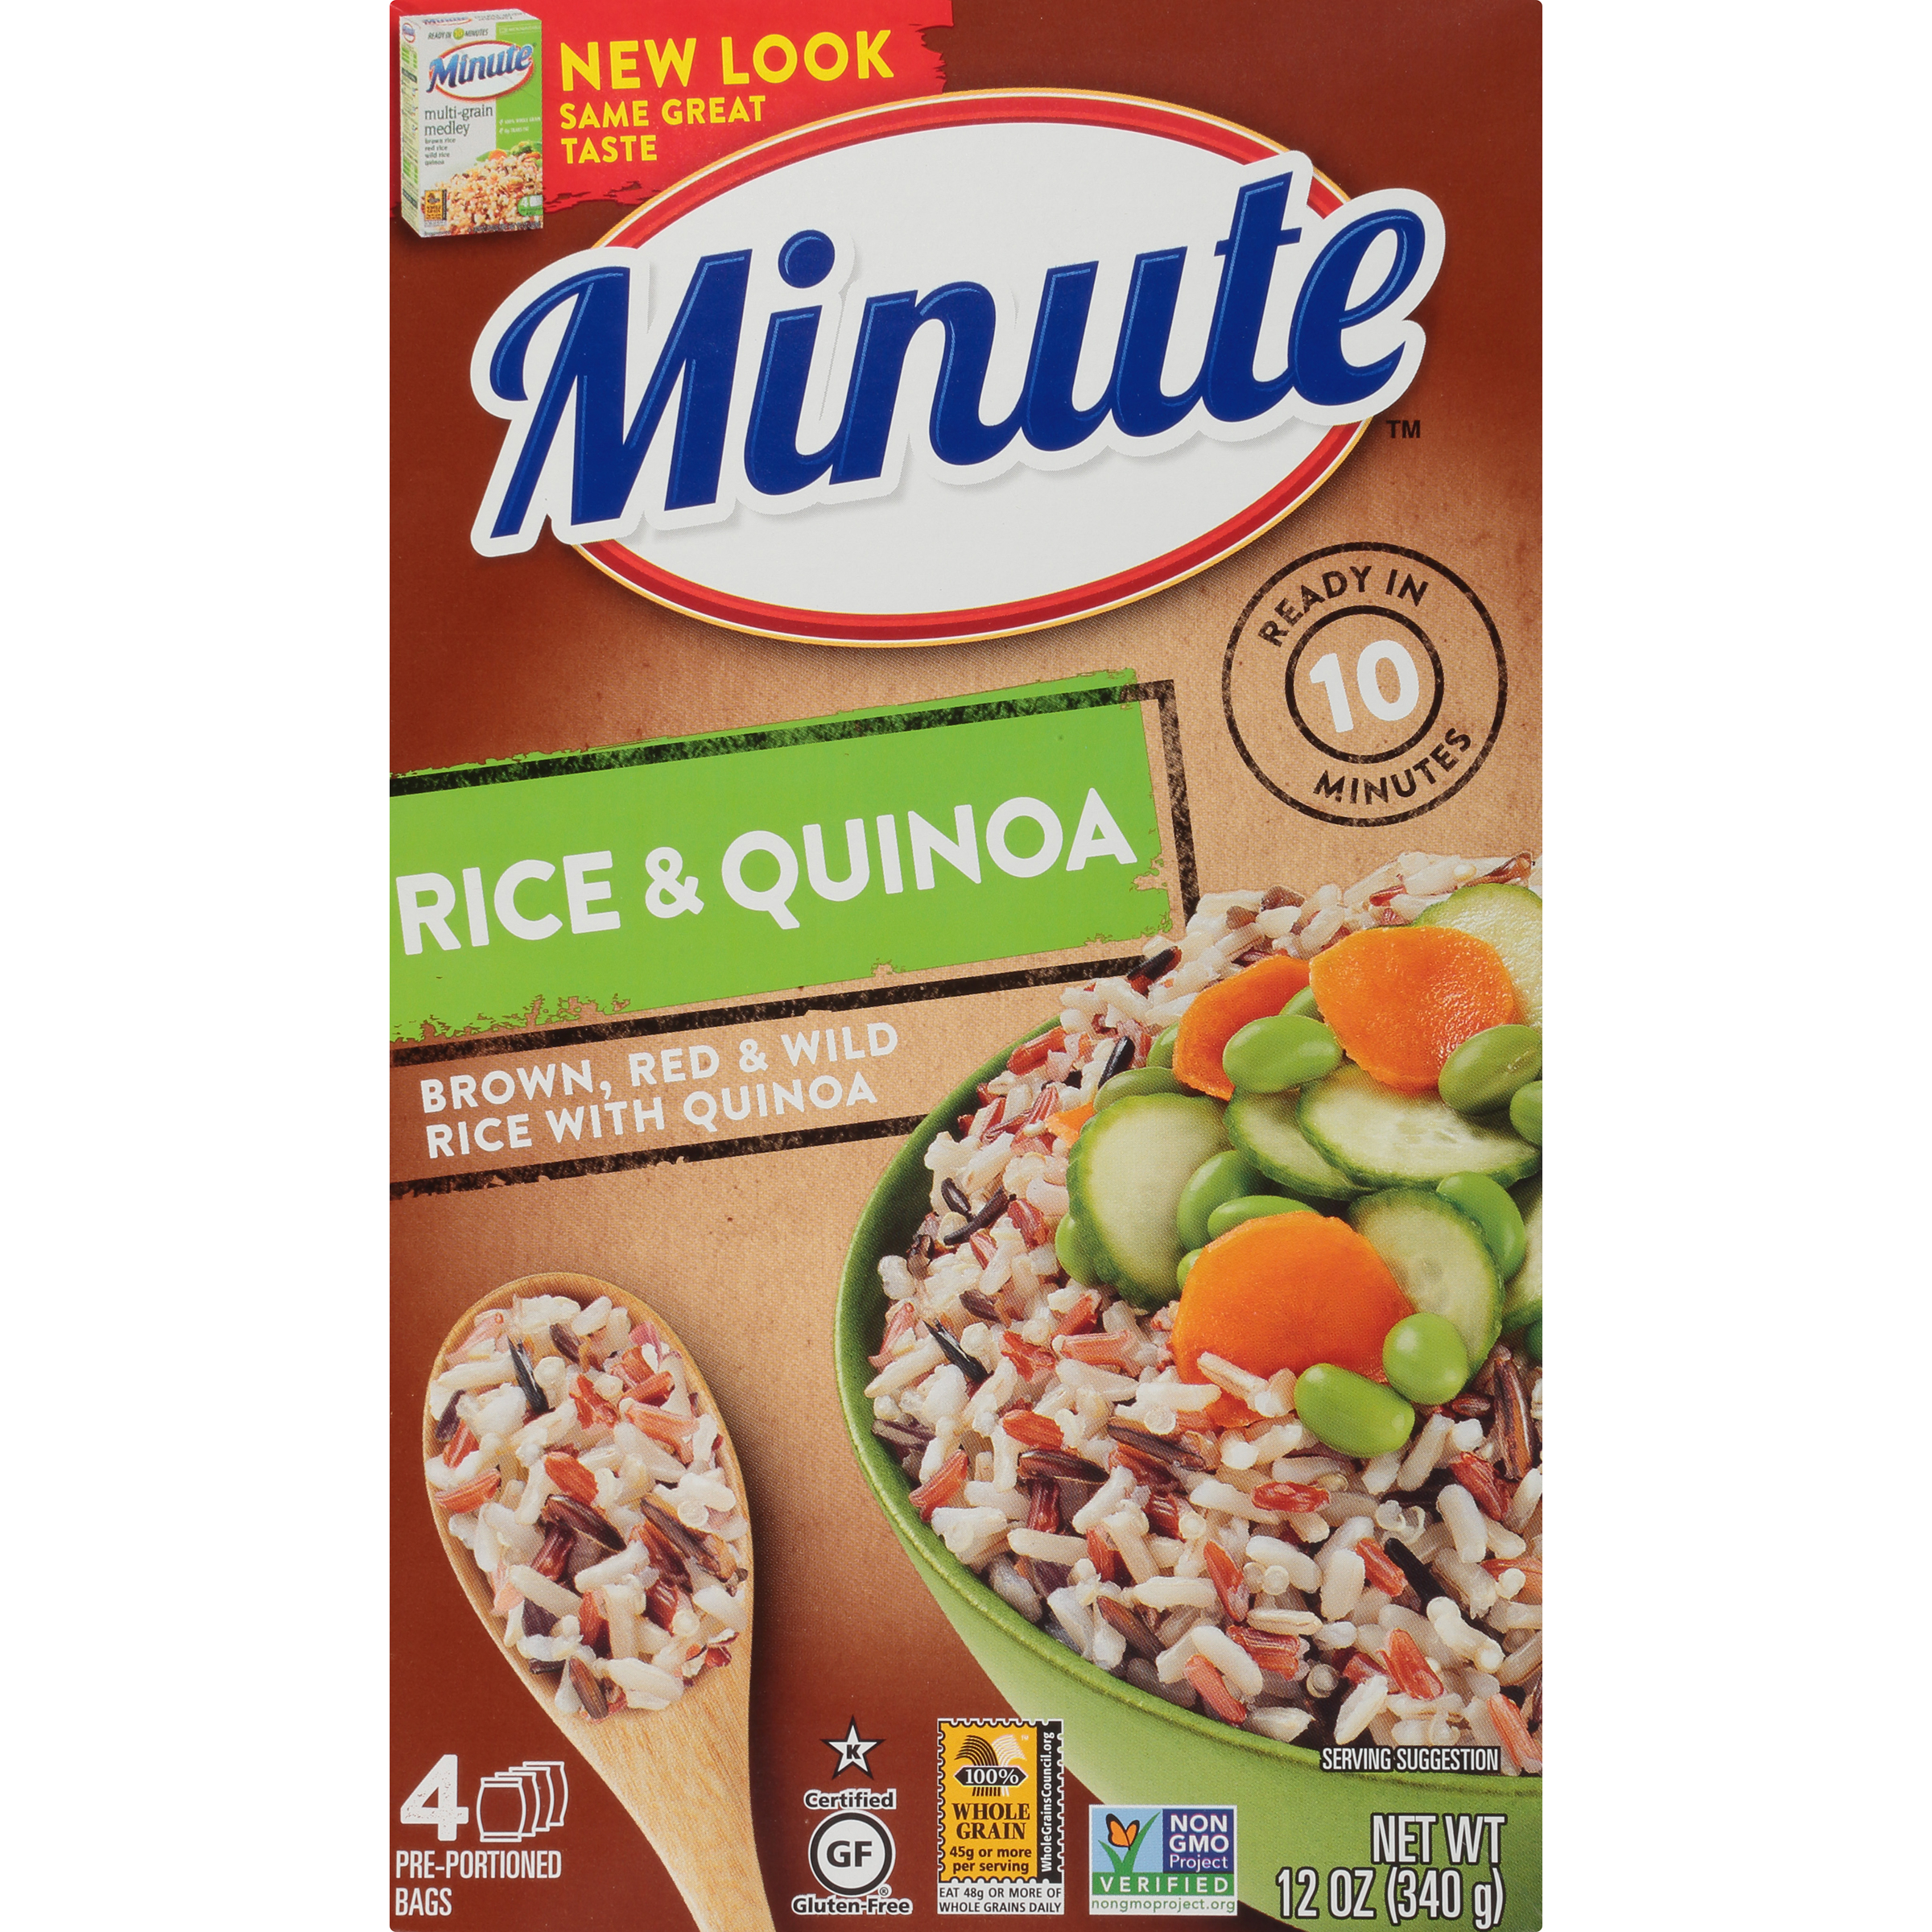 Minute Brown Red Wild Quinoa Multi-Grain Medley Rice, 3oz Bags, 4 Count